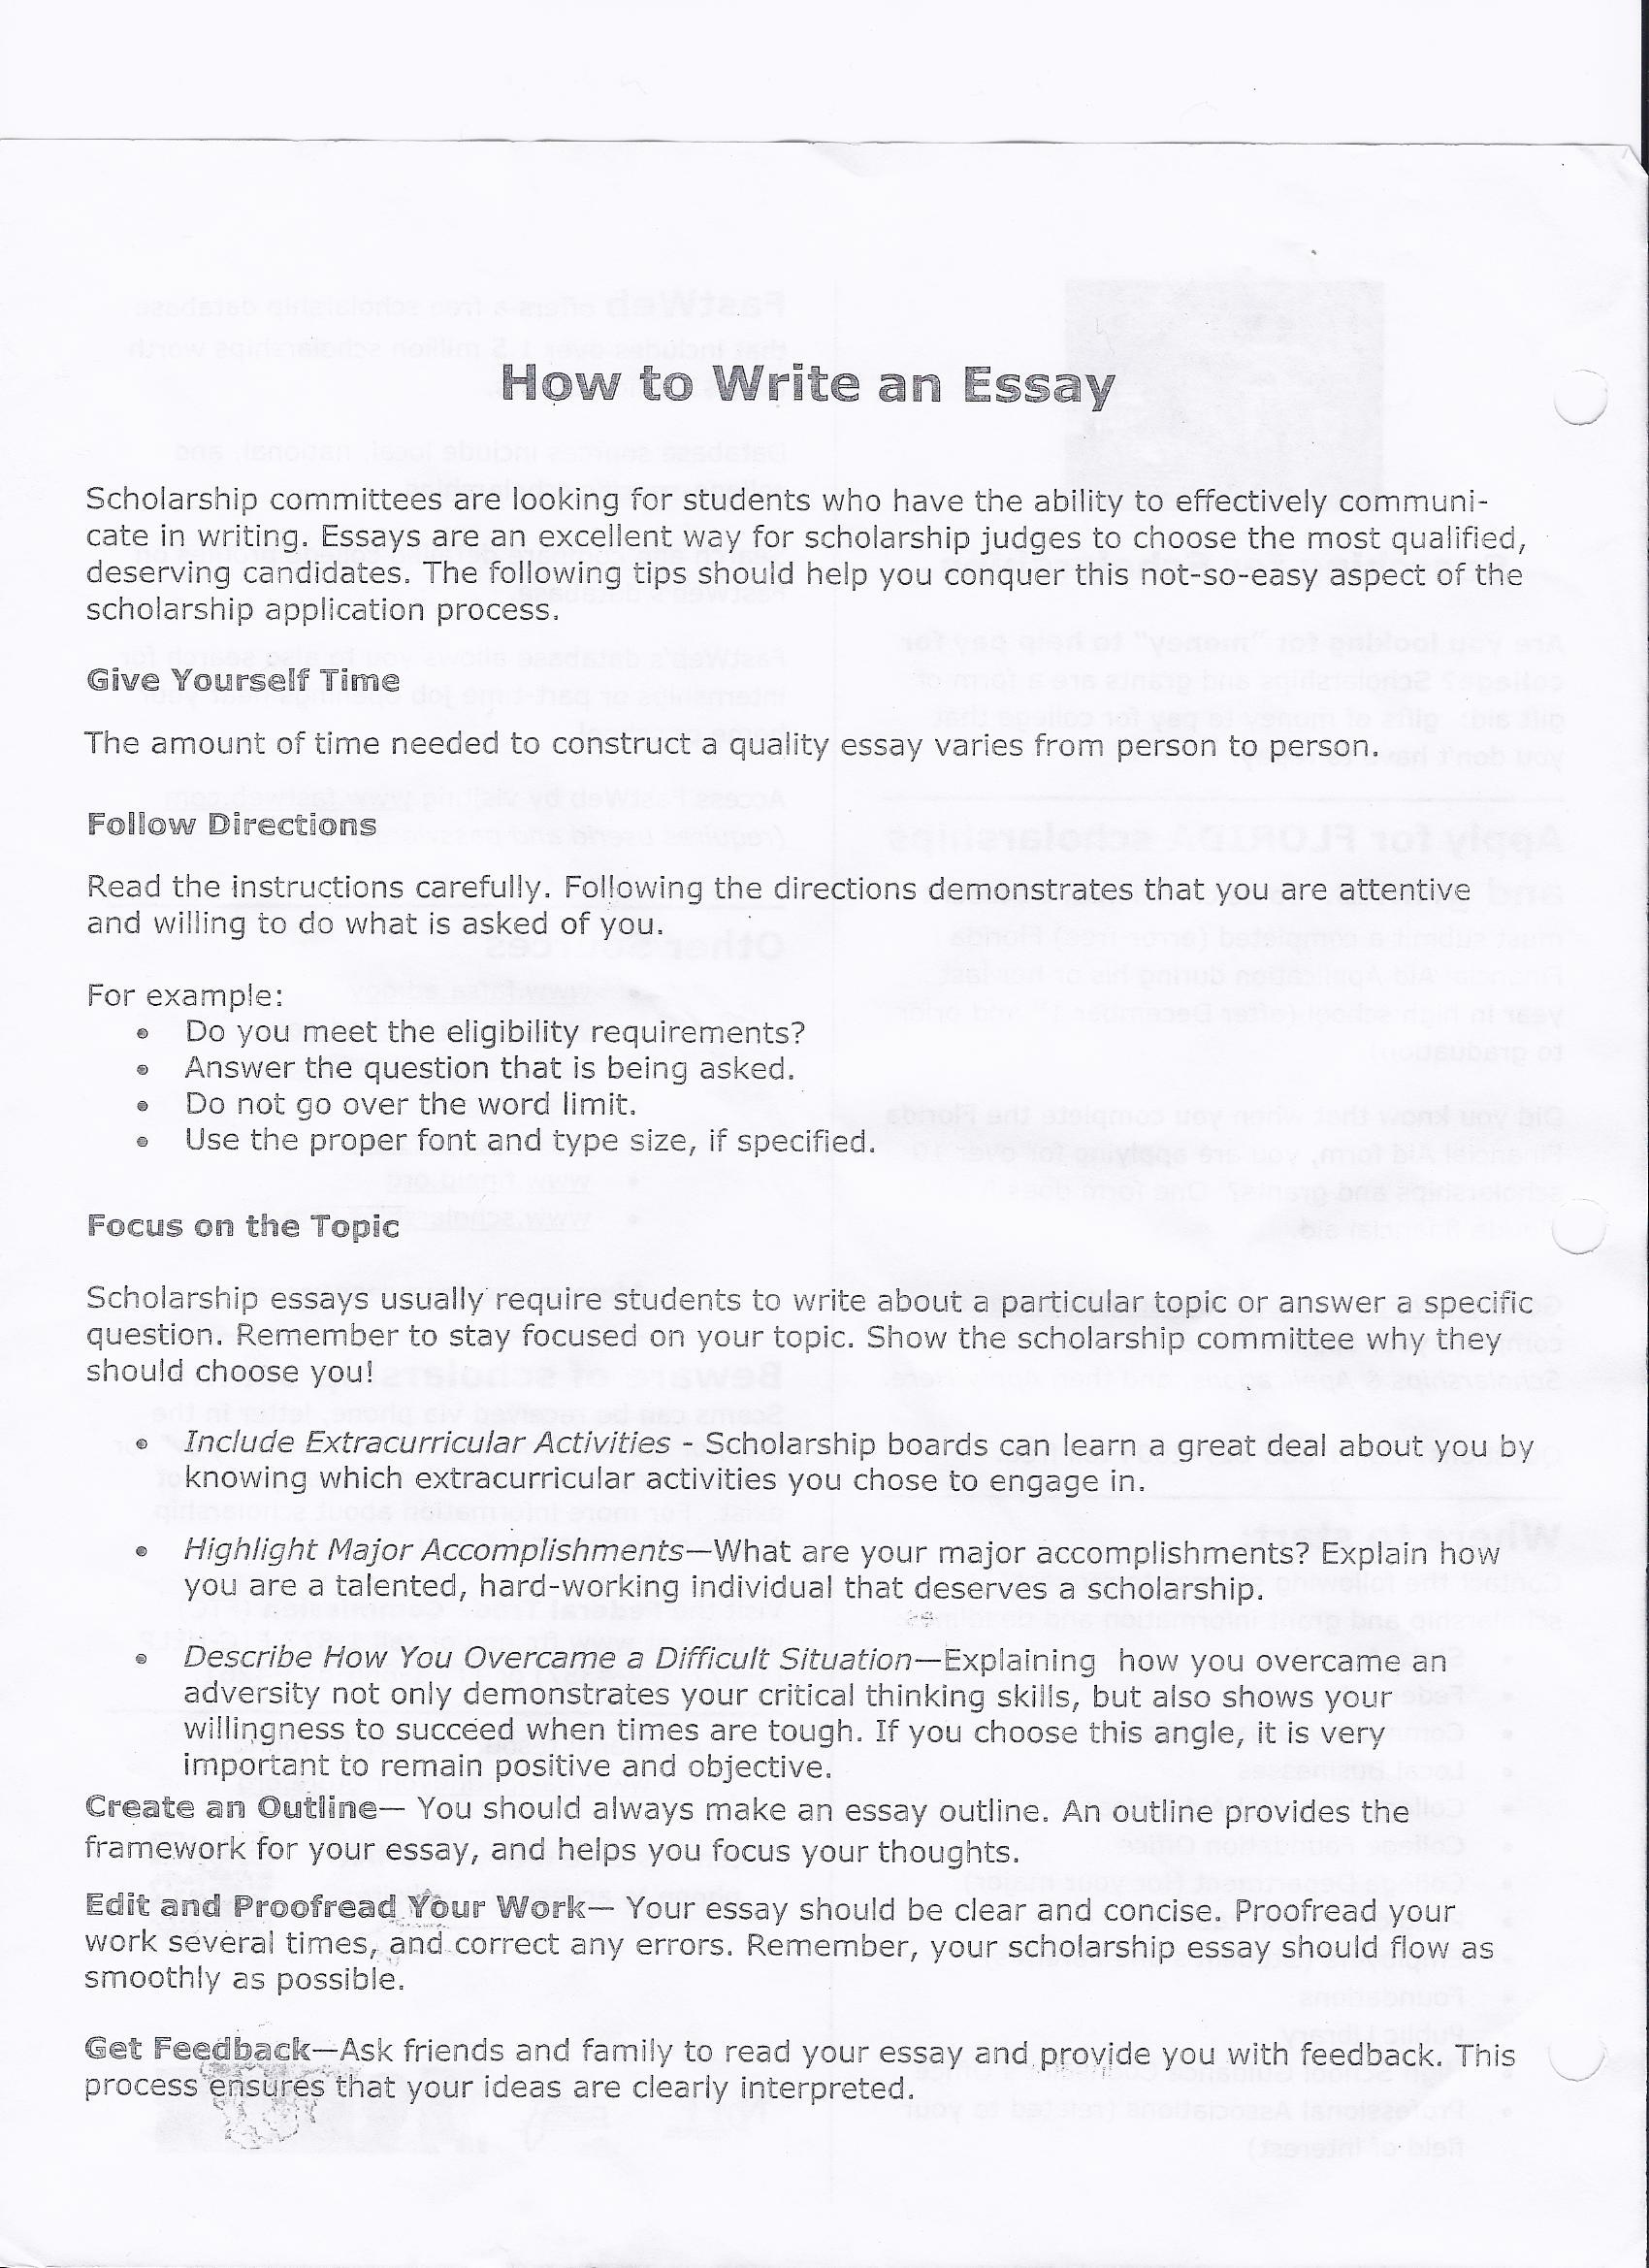 Essay On Shakespeare Life High School Essay Composing Assist Essaypaycom Examples Of Essay Outline also Essay On Aids Awareness High School Essay Composing Assist Essaypaycom      Essay On Dowry System In India